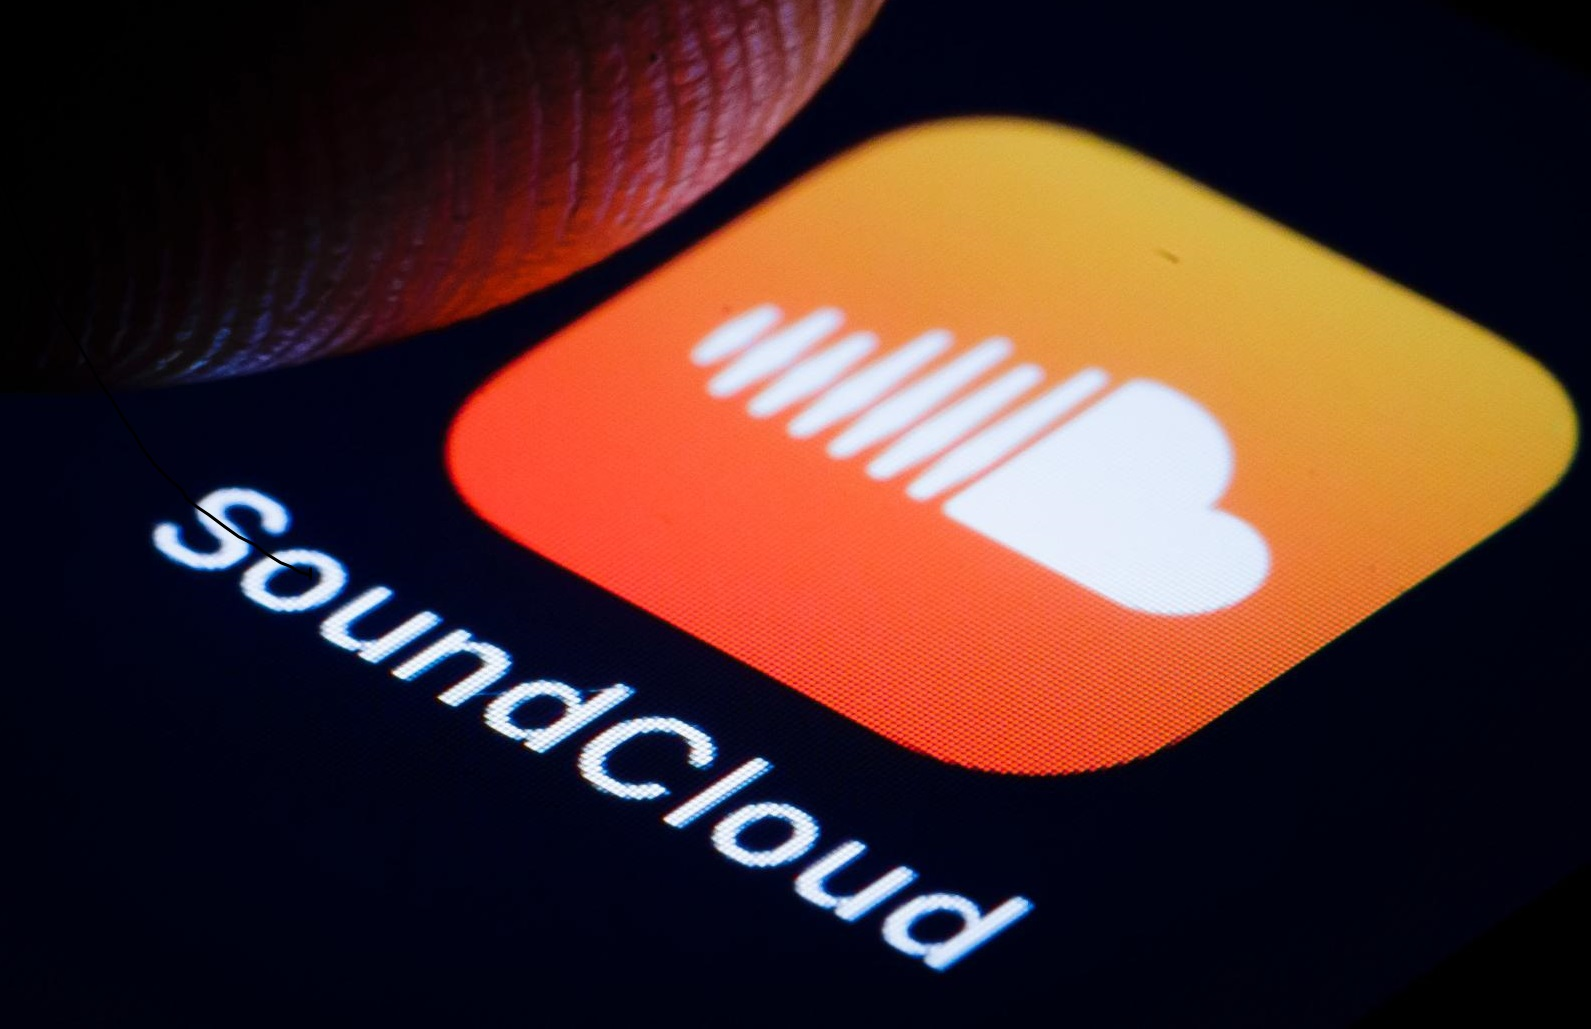 canzone Soundcloud